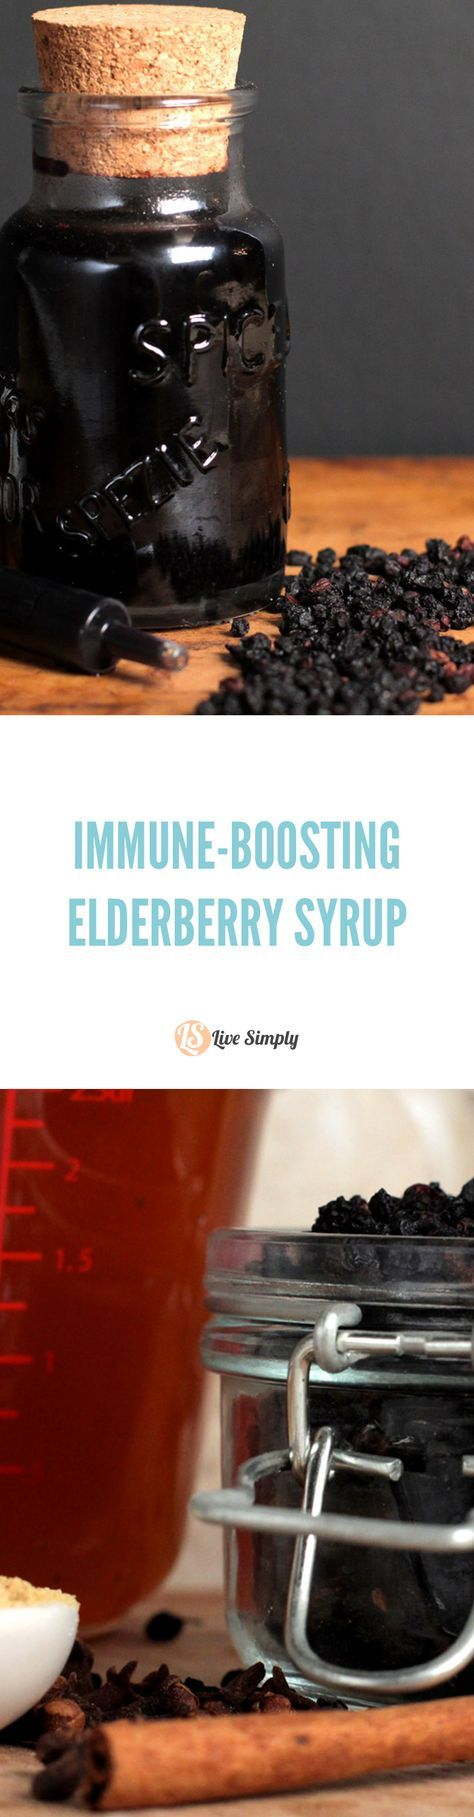 Homemade elderberry syrup is so easy to make and costs pennies compared to store-bought syrup! Plus, you can add this to salads, popsicles, yogurt, and even smoothies for an immune-loving boost. Step-by-step tutorial with super easy to follow directions.